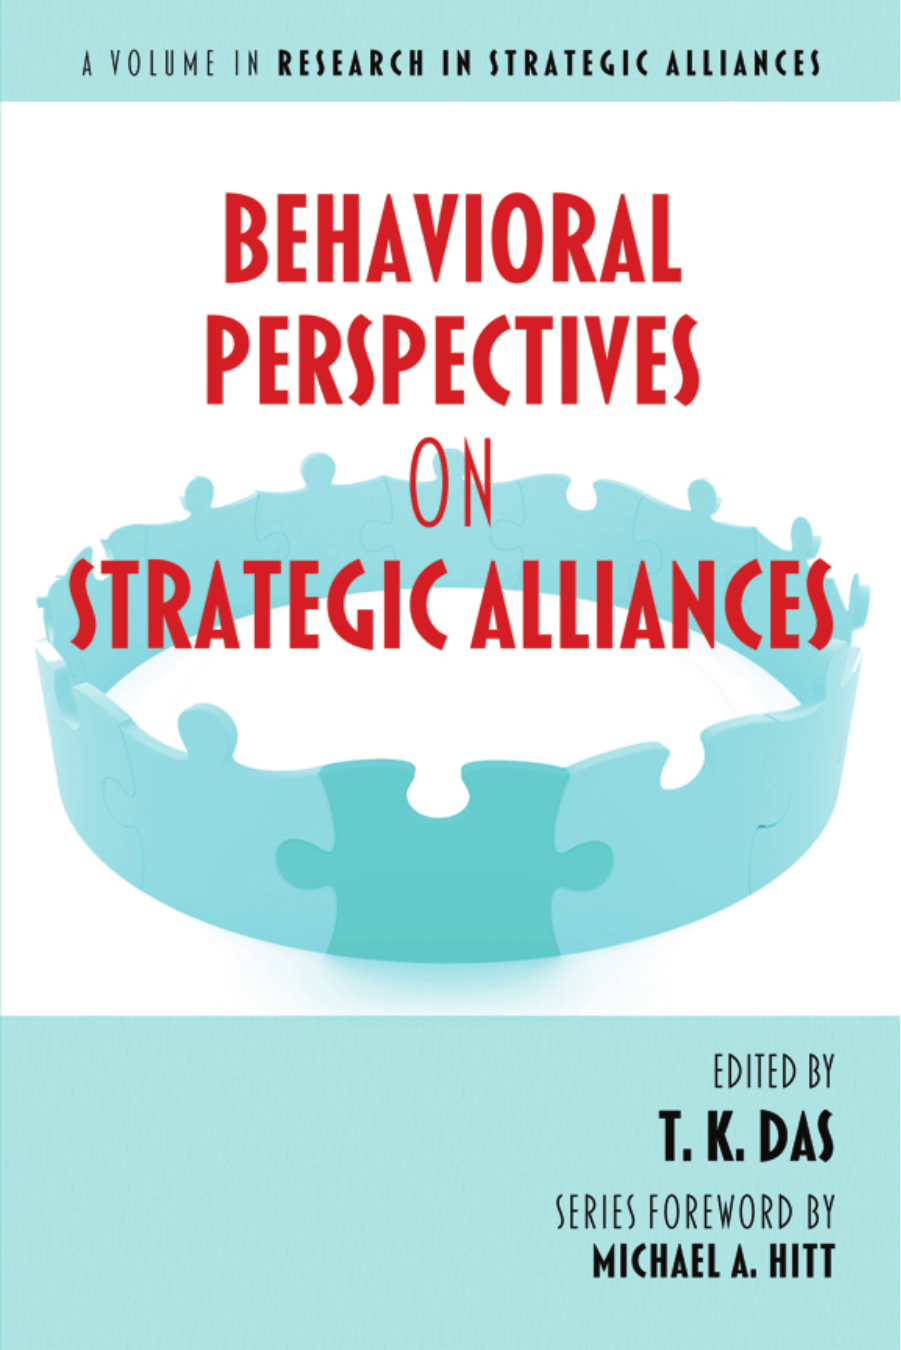 strategy alliance perspectives